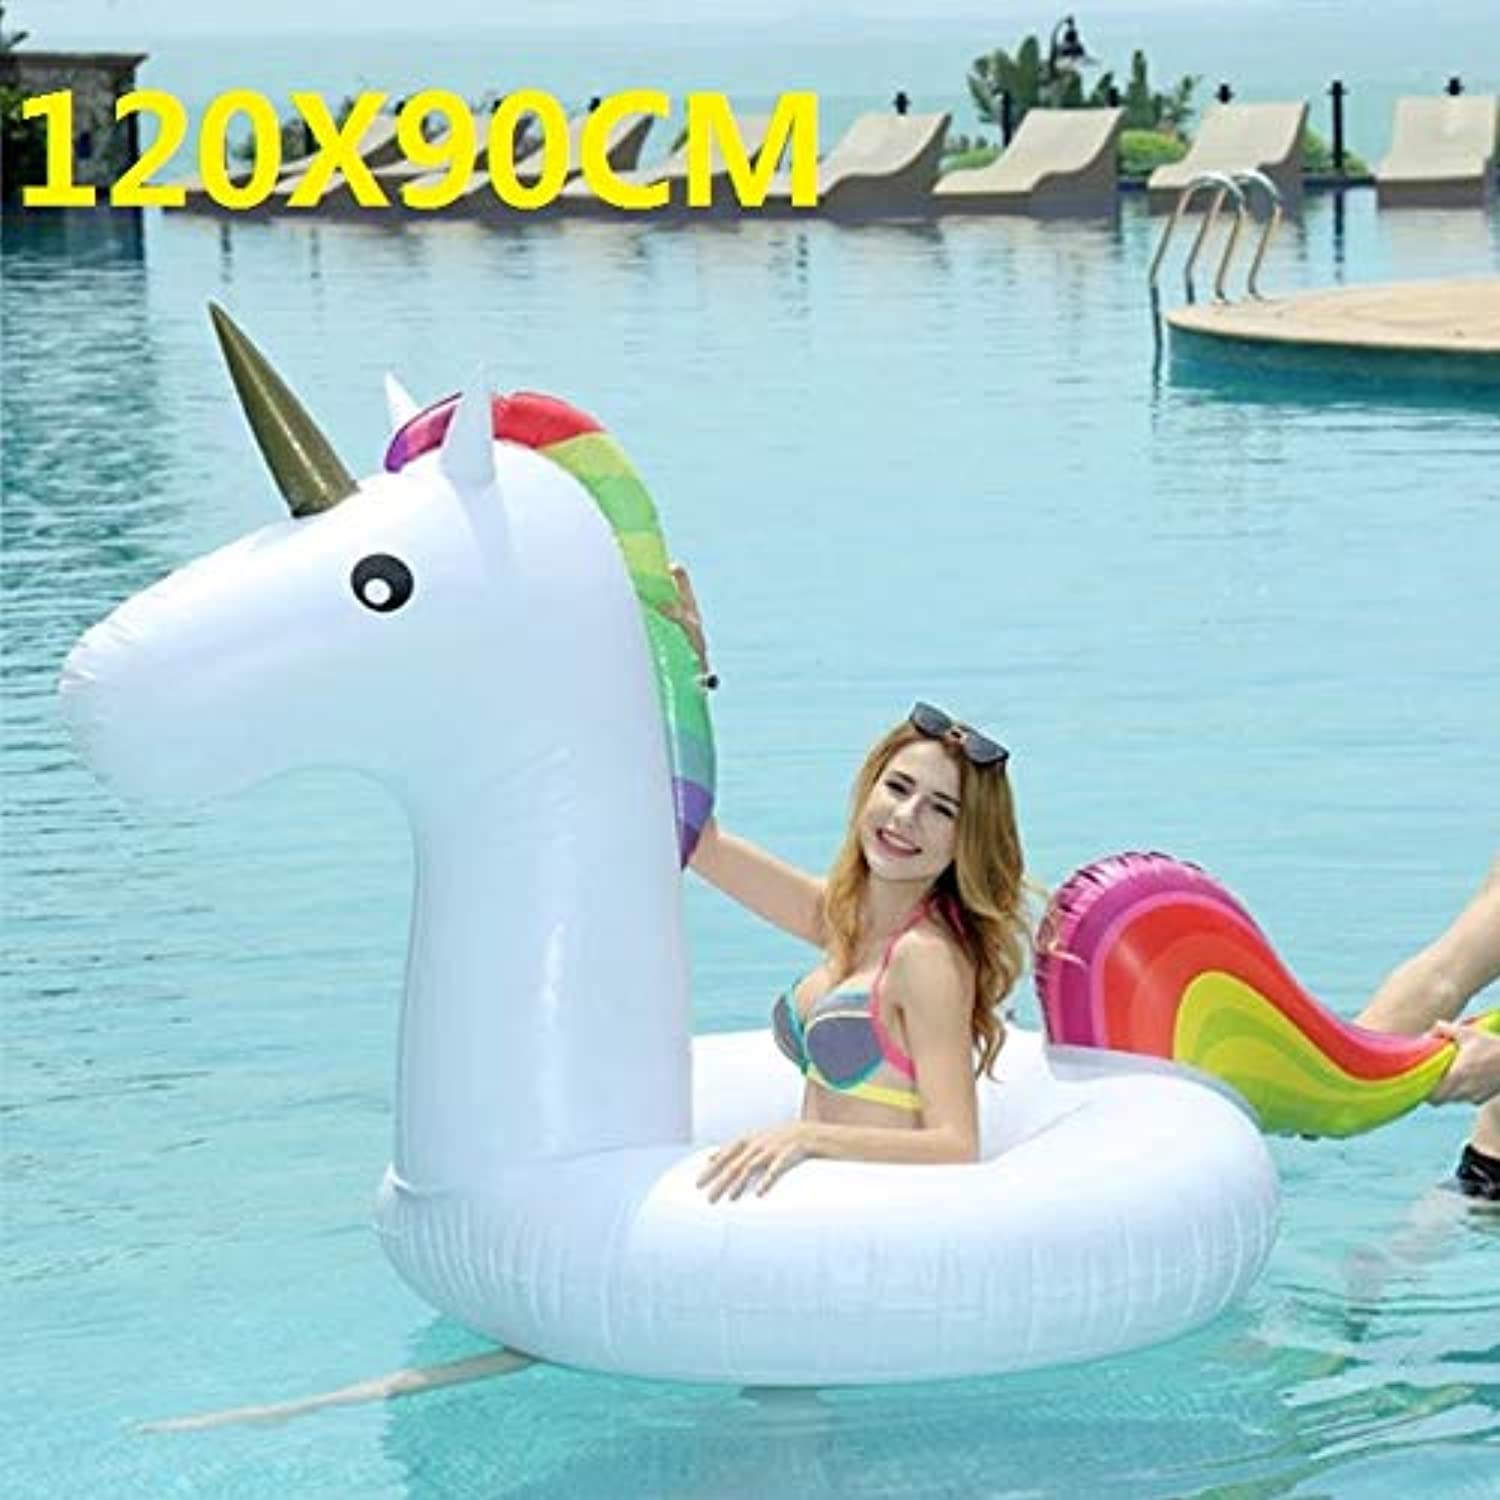 SHIJING Giant Flower Print Swan Inflatable Float For Adult Pool Party Toys Green Flamingo RideOn Air Mattress Swimming Ring boia,4